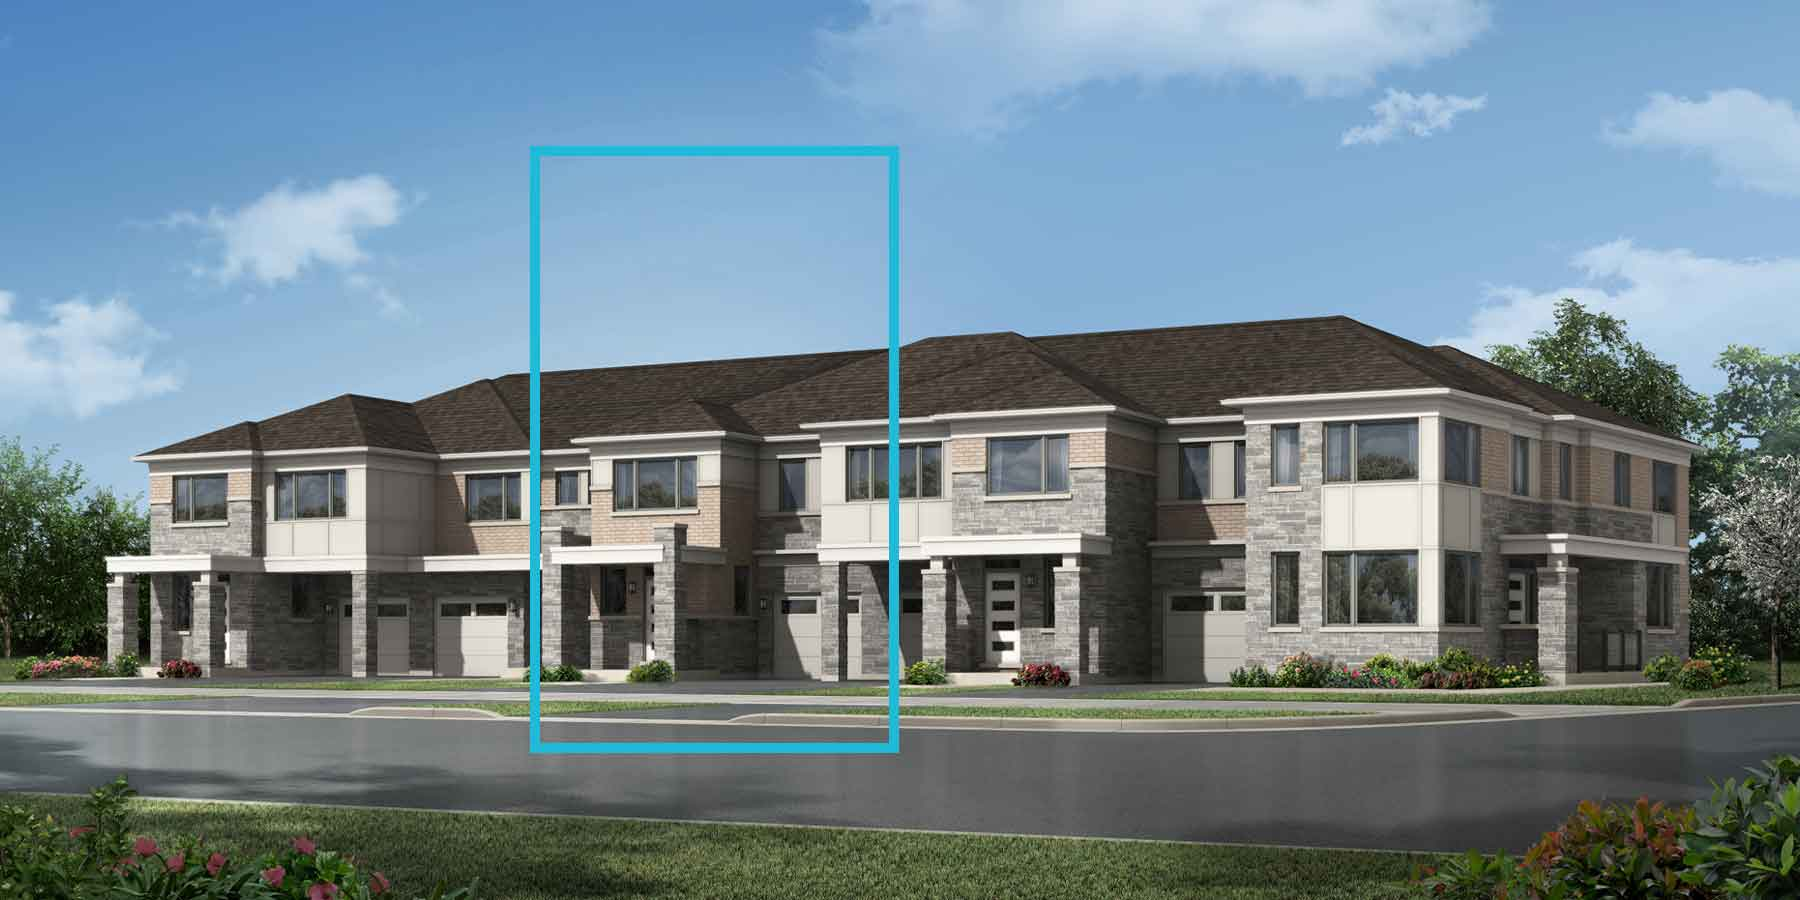 Greenwood Plan TownHomes at Seaton Whitevale in Pickering Ontario by Mattamy Homes